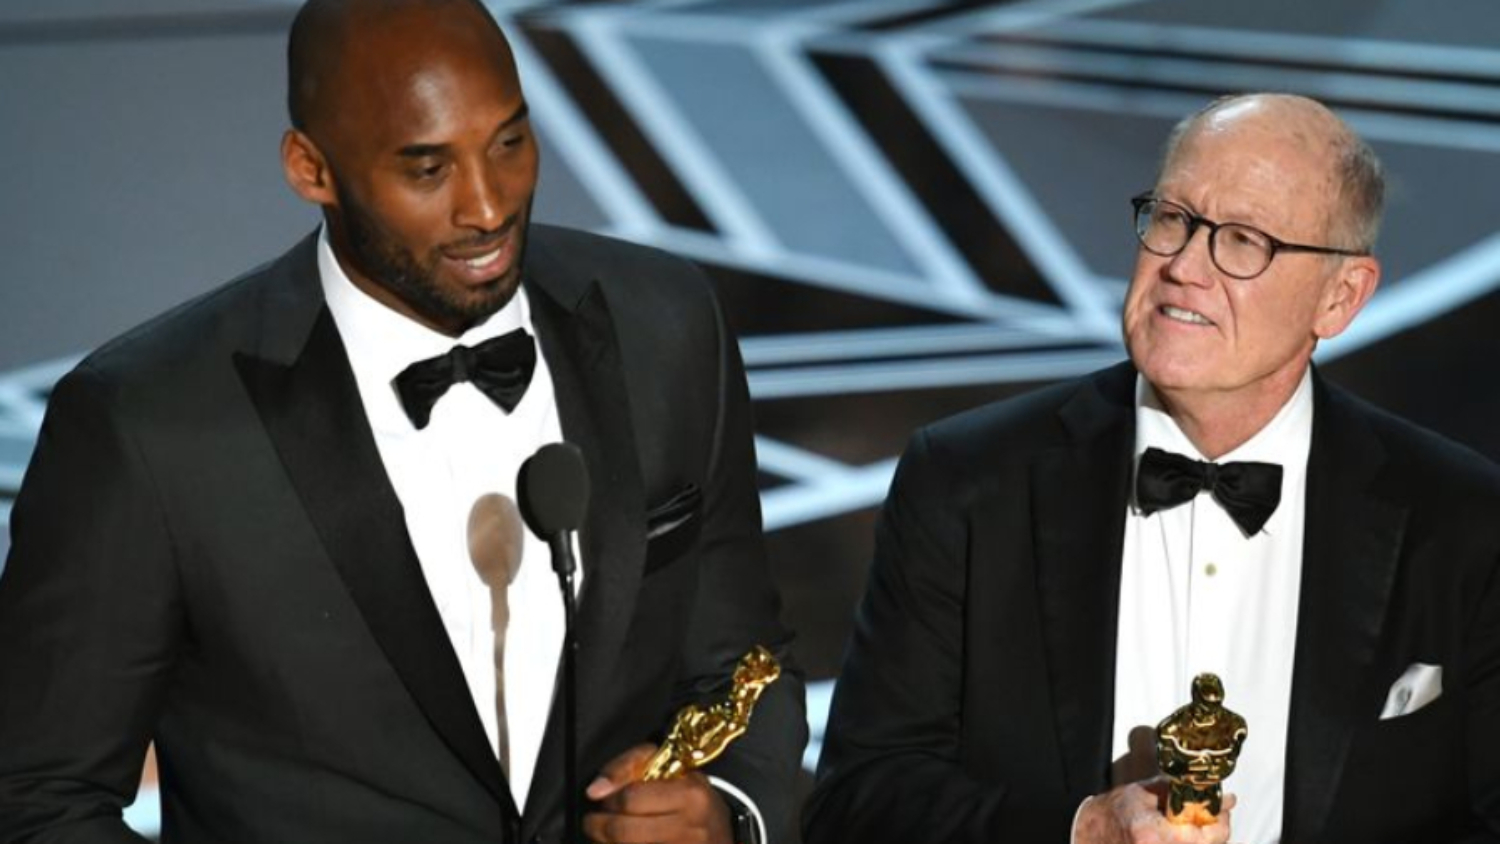 Kobe Bryant will be honoured at this year's Oscars